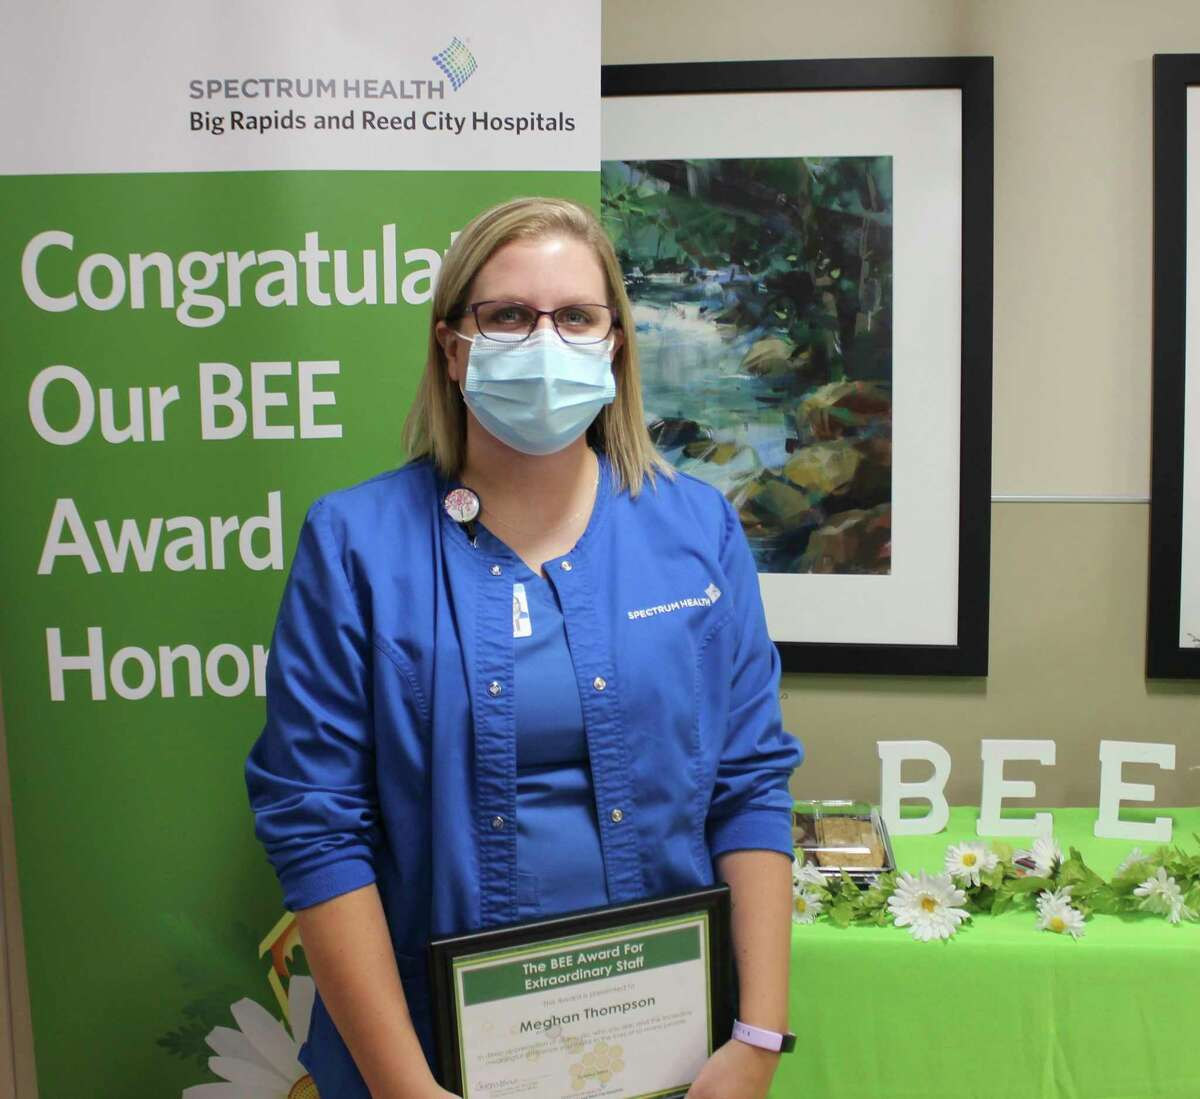 Mammographer Meghan Thompson was given the BEE Award. (Courtesy photo)